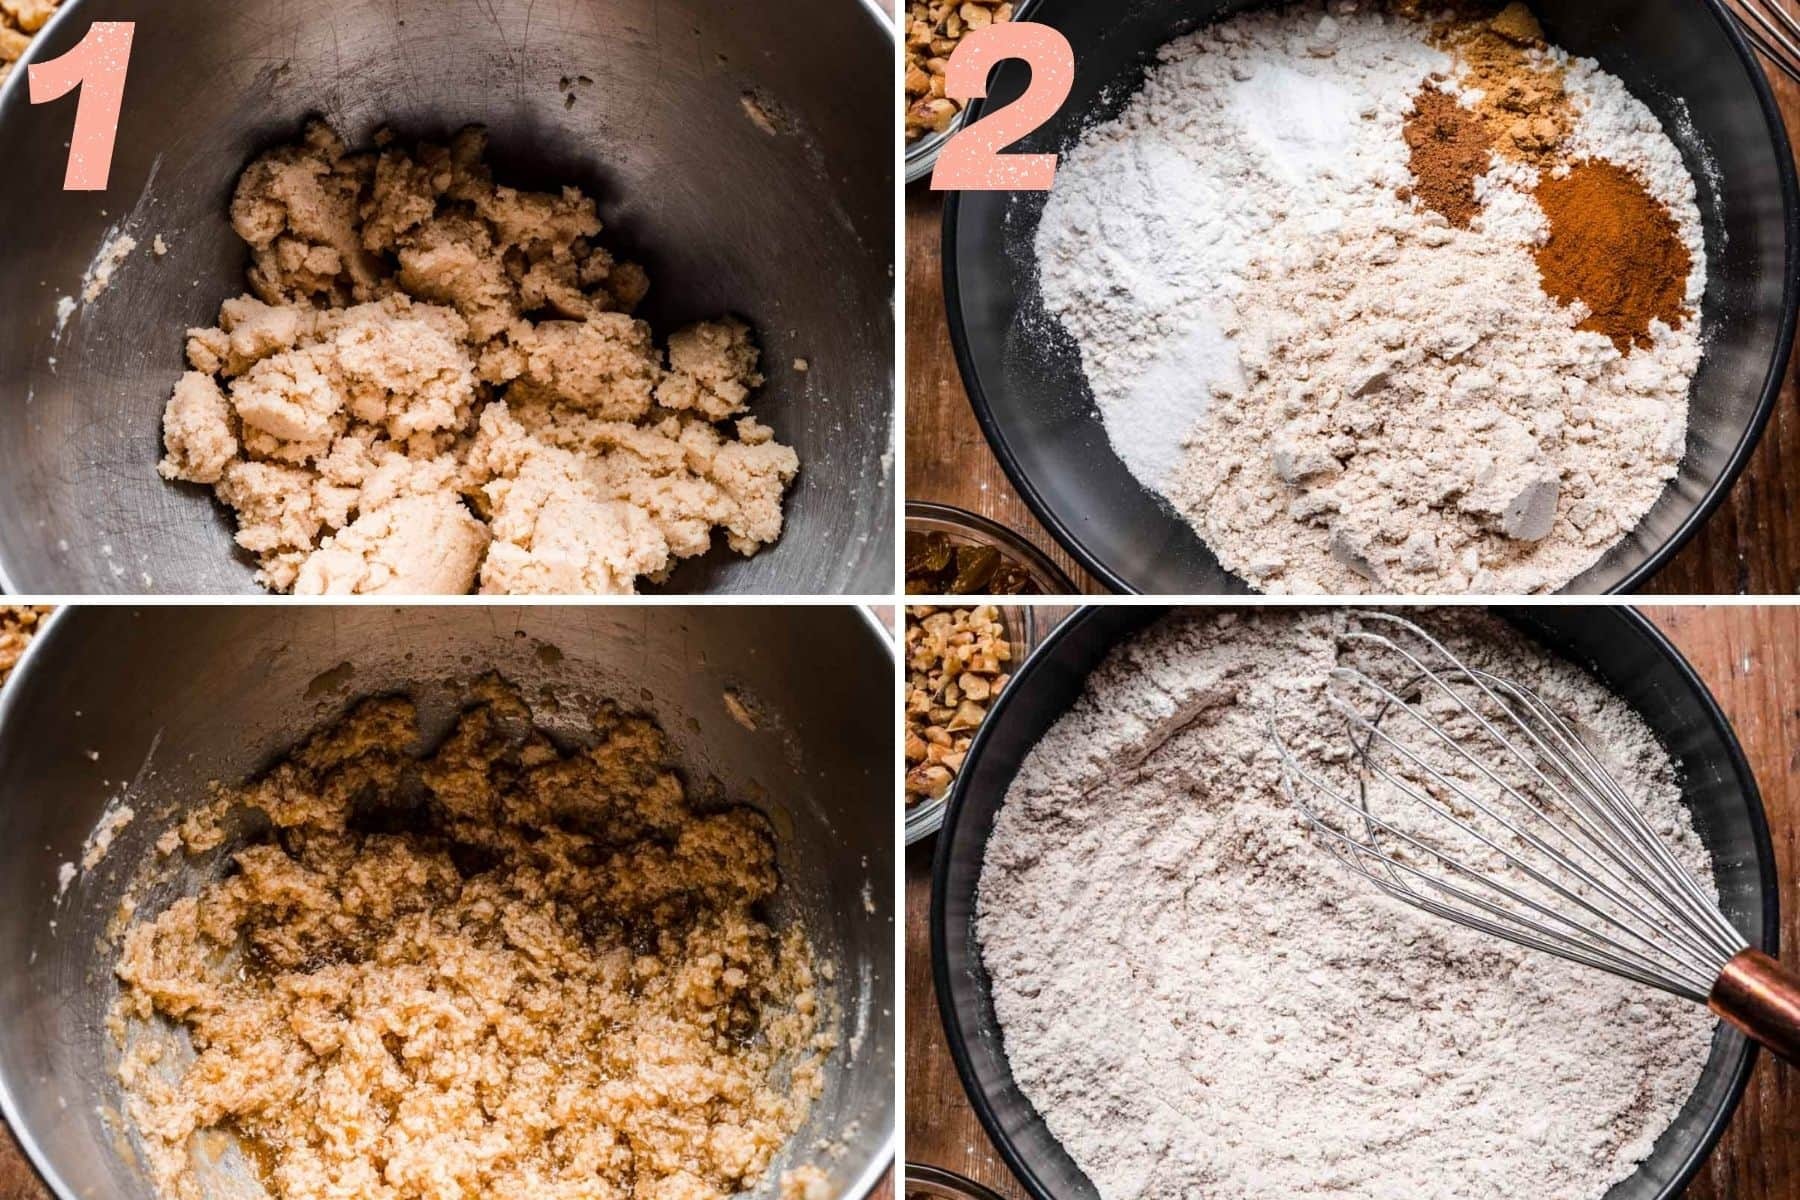 On the left: wet ingredients being mixed together. On the right: dry ingredients being mixed together.